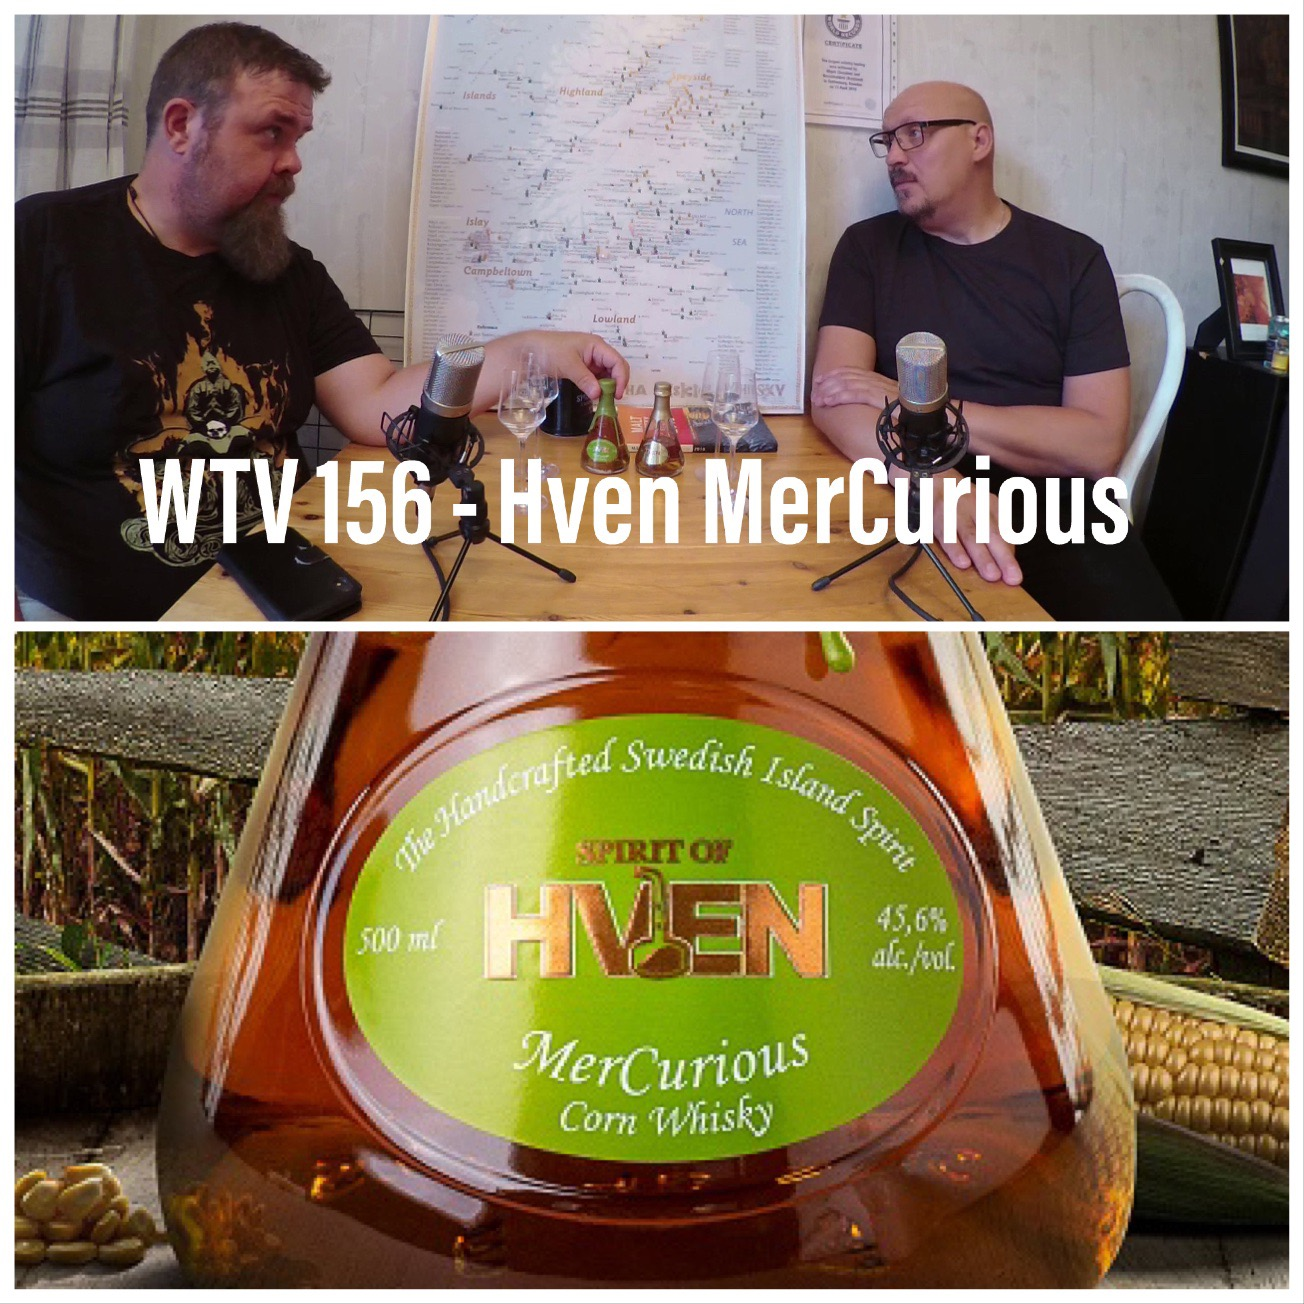 WTV 156 – Hven MerCurious